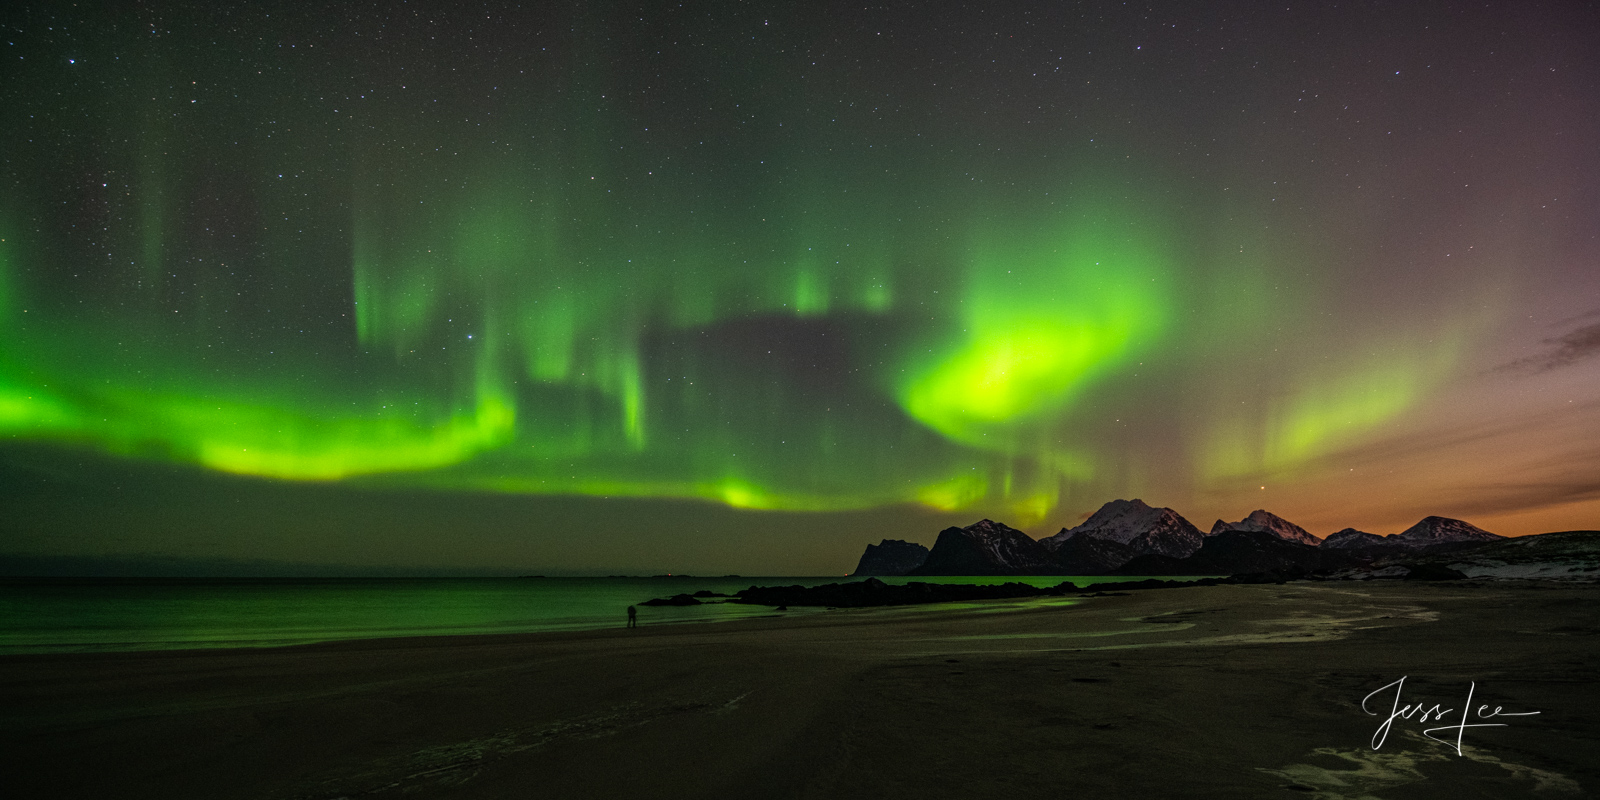 Limited Edition of 50 Exclusive high-resolution Museum Quality Fine Art Prints the Northern Norway Northern Lights. Photos copyright...